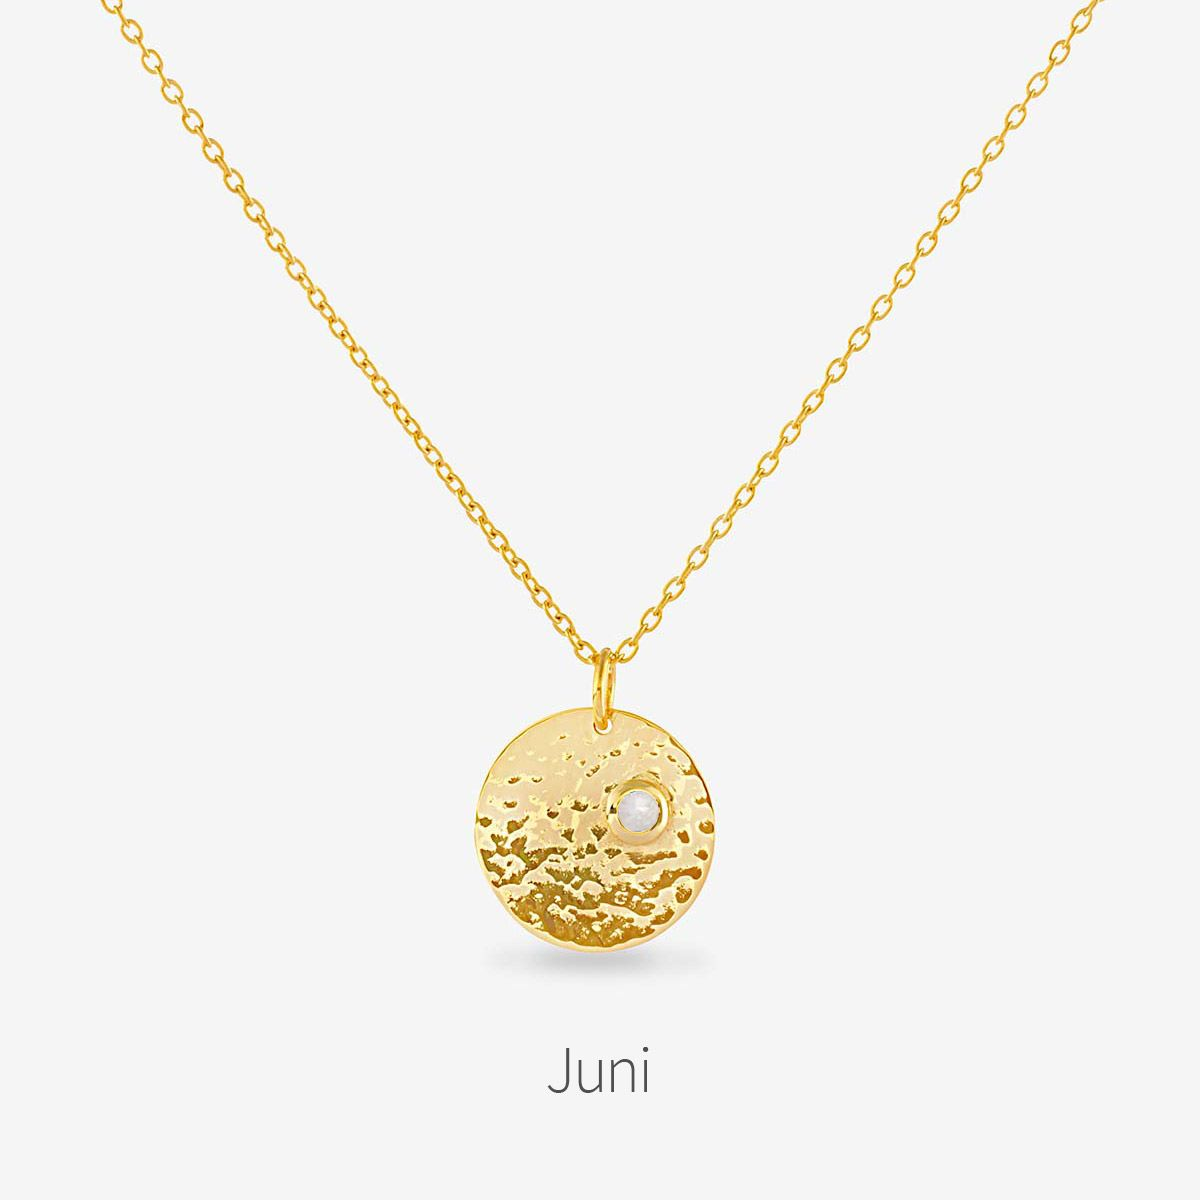 Birthstone June - Halsketten - 18k vergoldet